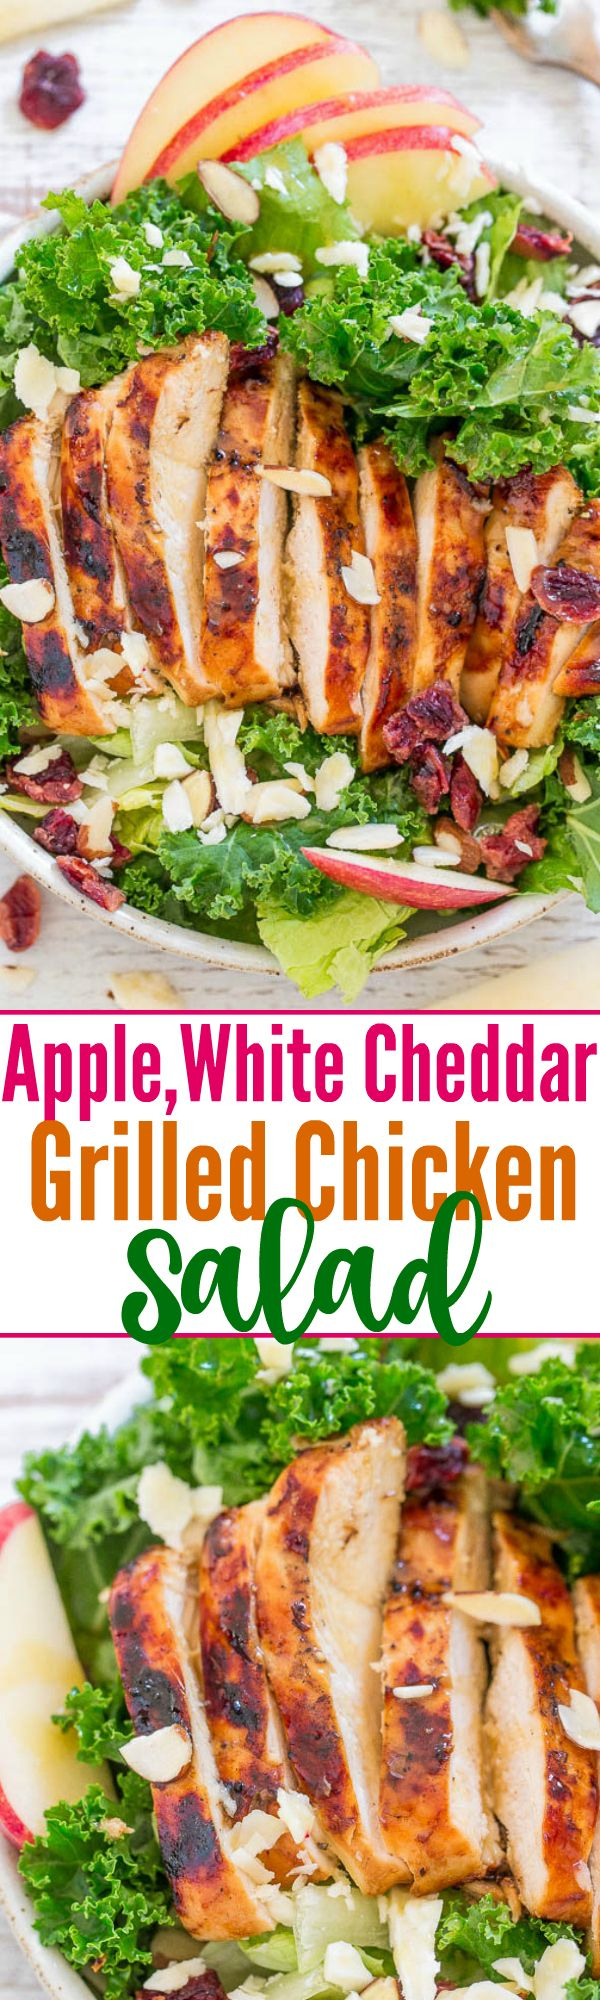 There's nothing like grilled chicken to add flavor to a salad. If you don't have an outdoor grill you can use a grillpan. The marinade for the chicken and the vinaigrette for the salad are one in the same. I love time savers like this. It's light, tangy-yet-sweet from the apple cider vinegar, honey, and …